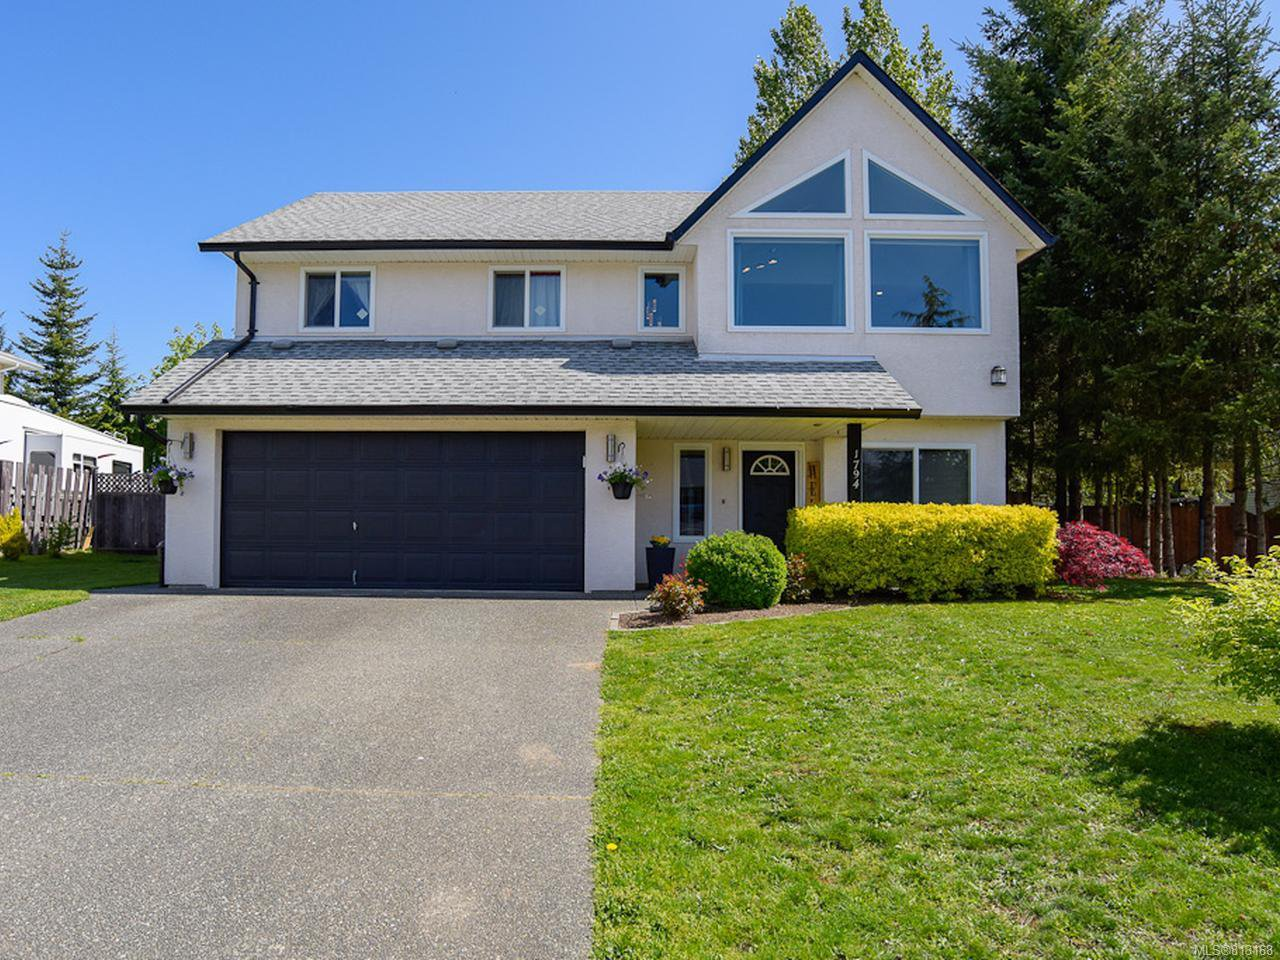 Main Photo: 1794 MALLARD DRIVE in COURTENAY: CV Courtenay East House for sale (Comox Valley)  : MLS®# 813168